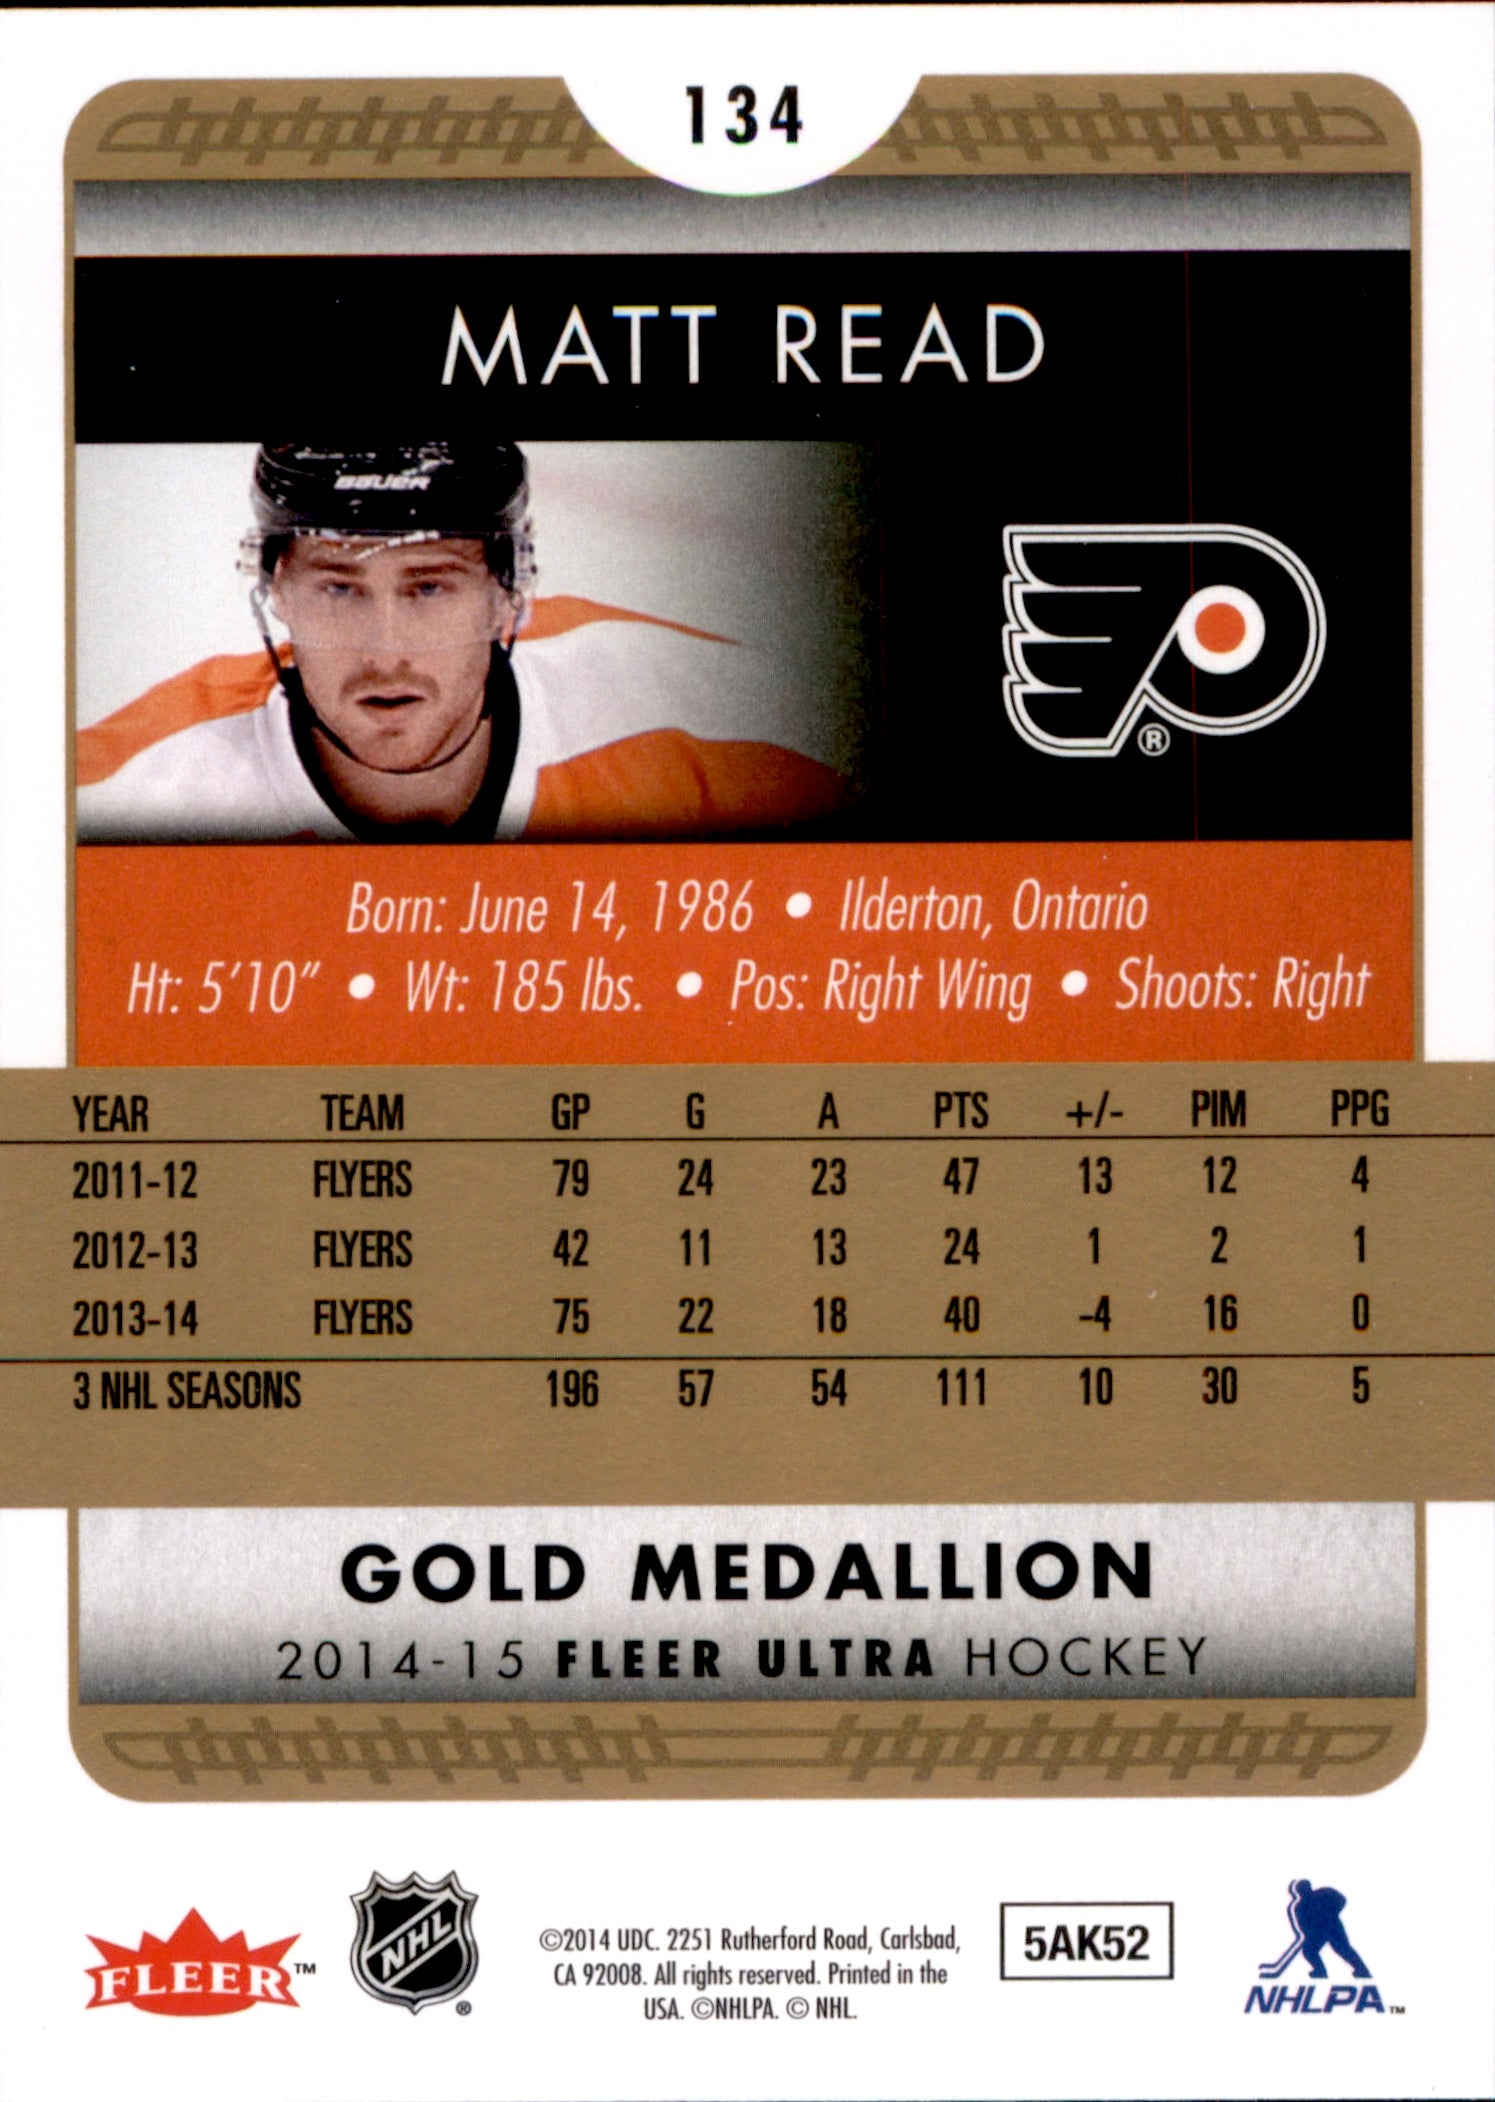 2014-15 Fleer Ultra Gold Medallion #134 Matt Read | Eastridge Sports Cards